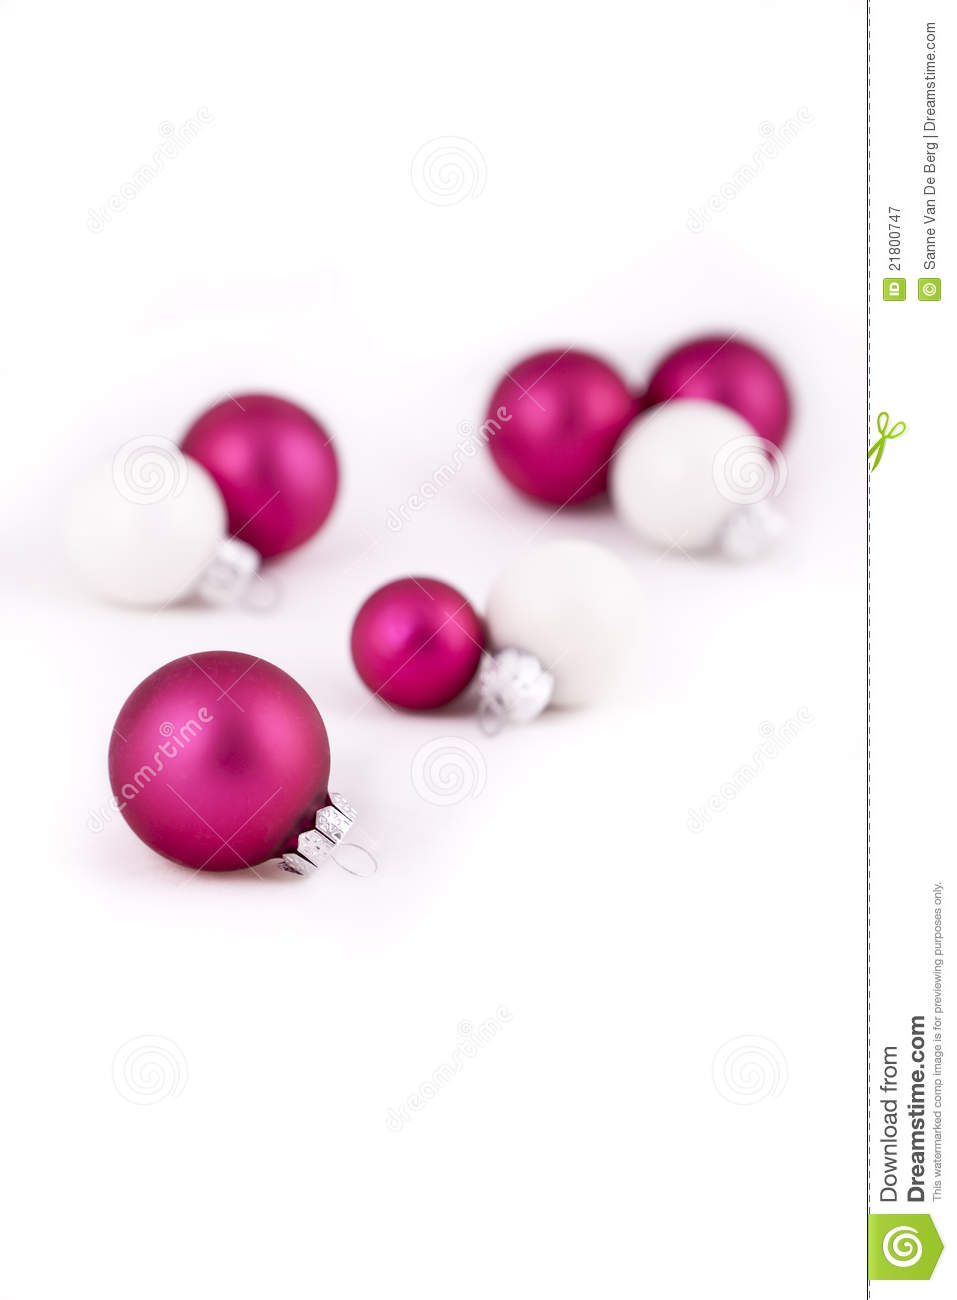 Pink and white christmas decorations royalty free stock - Pink and white decorations ...